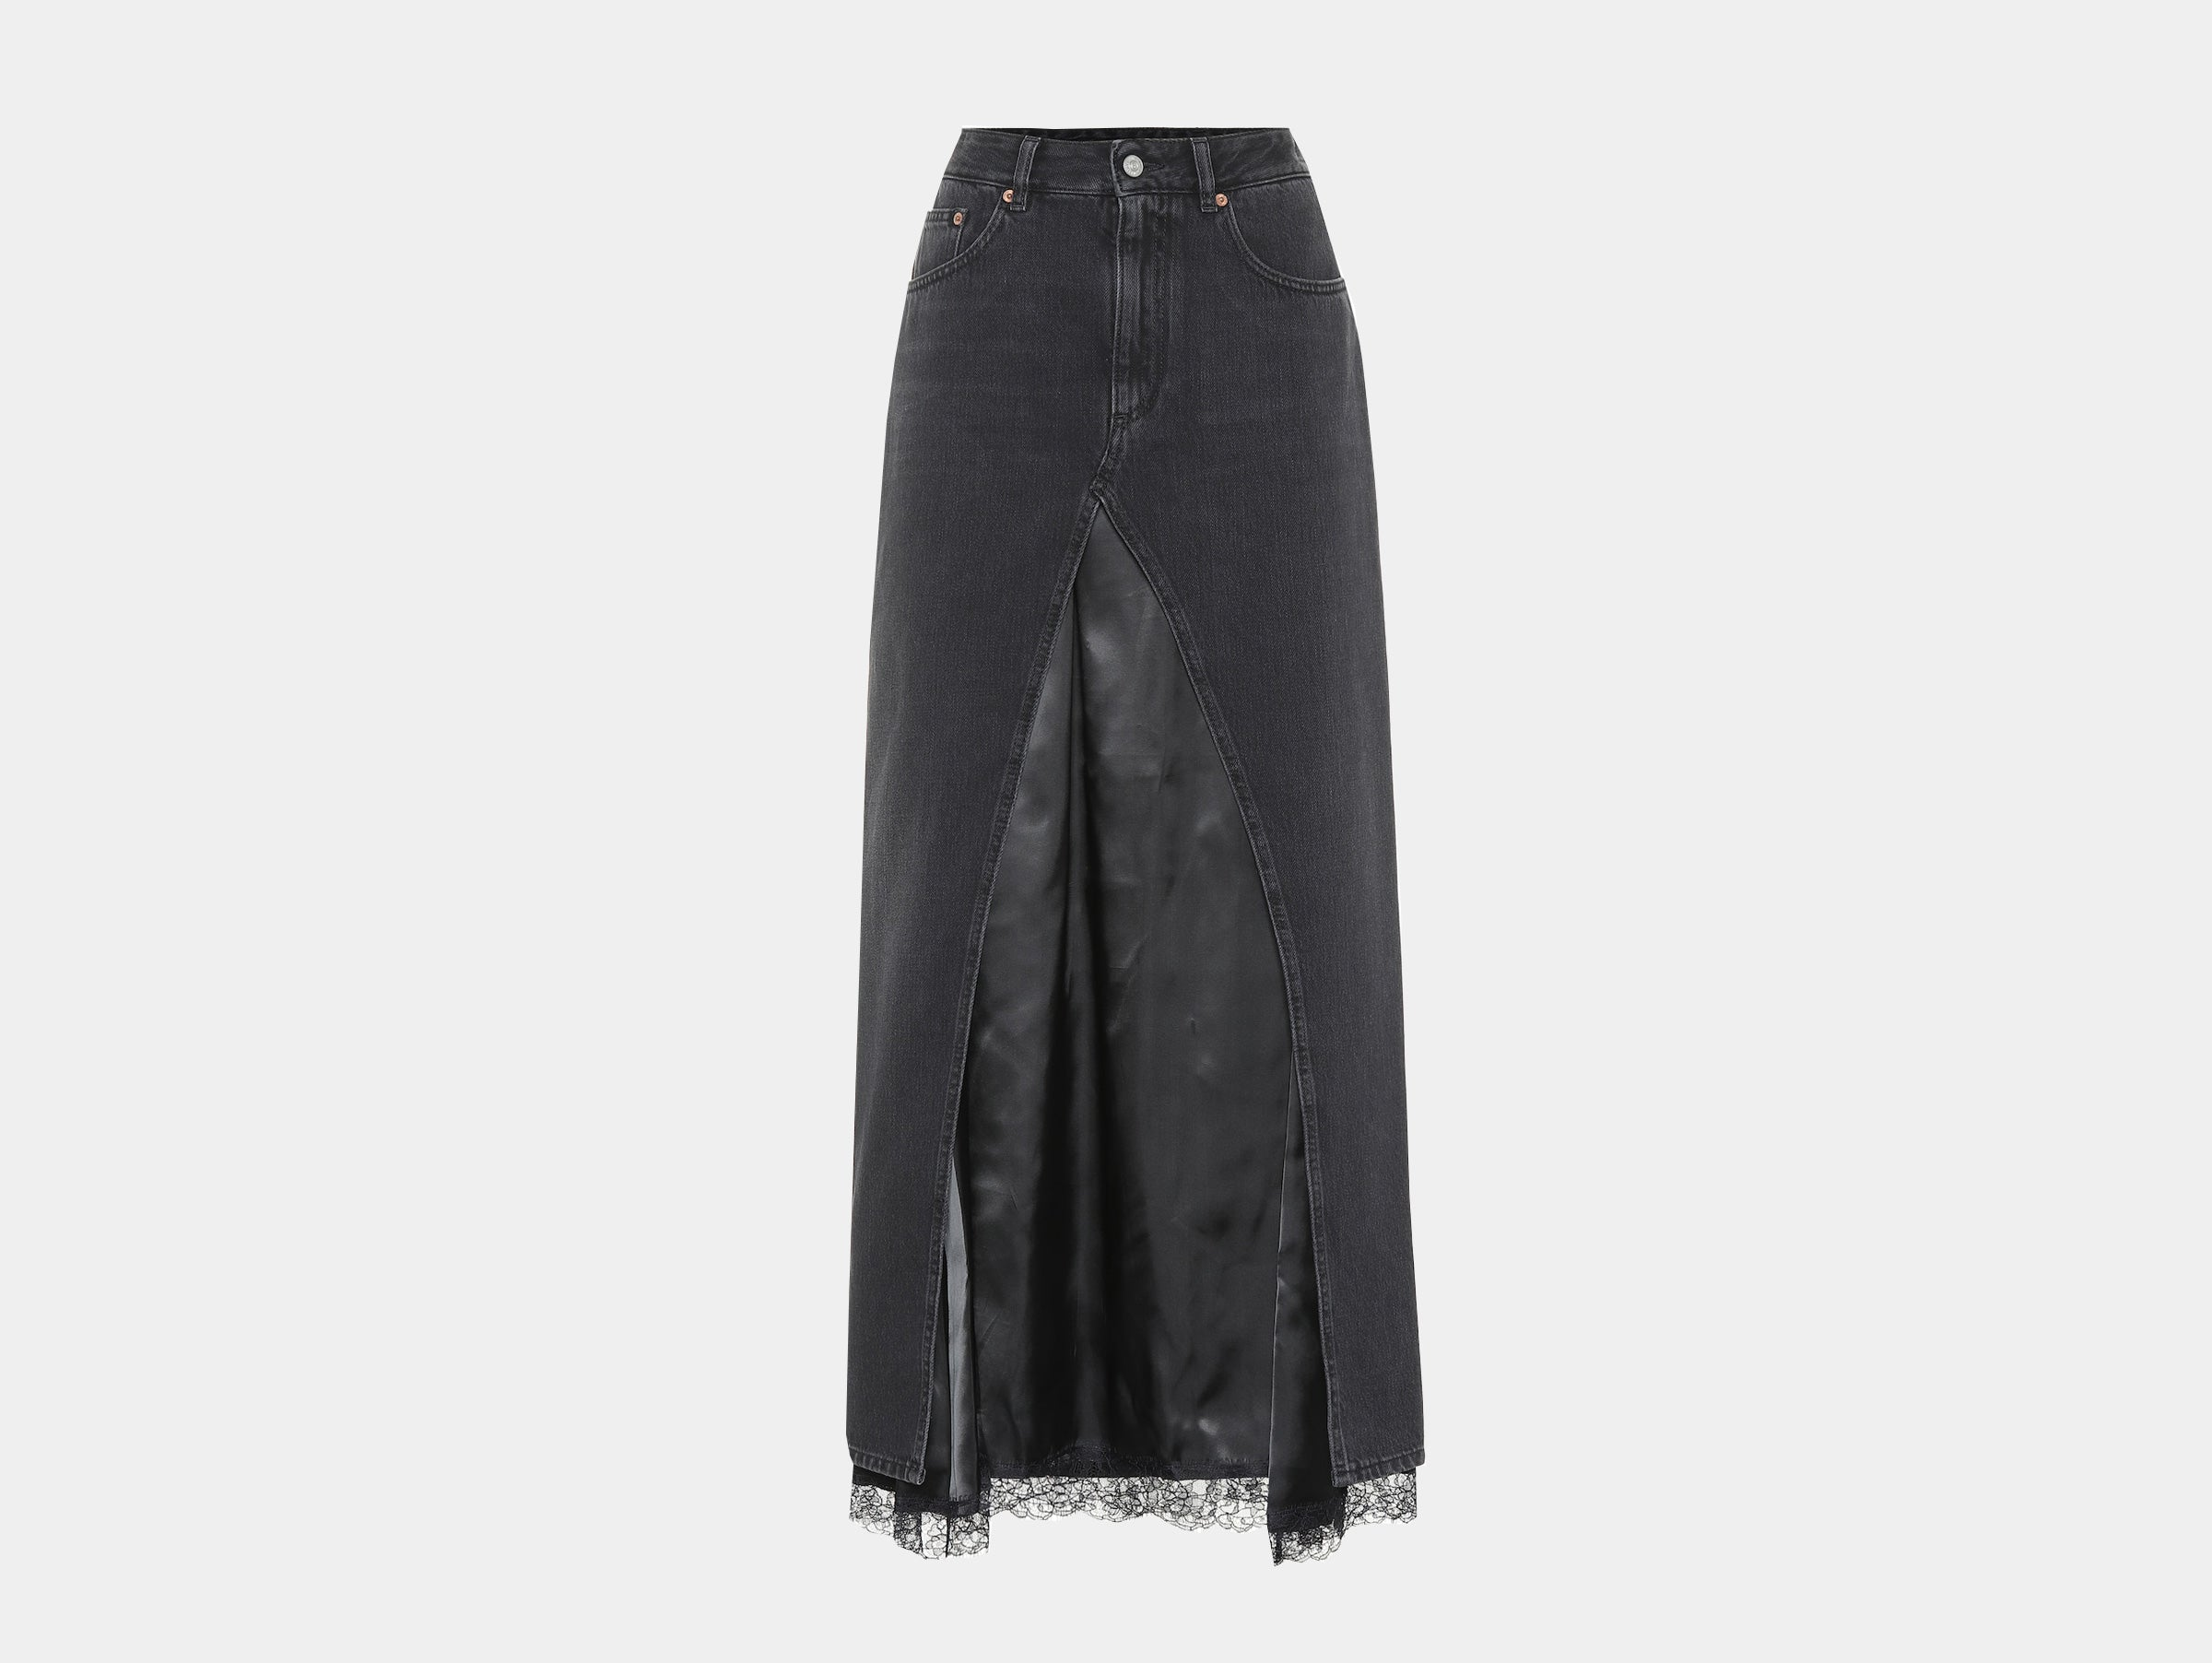 MM6 Maison Margiela - Black denim lace and satin midi skirt